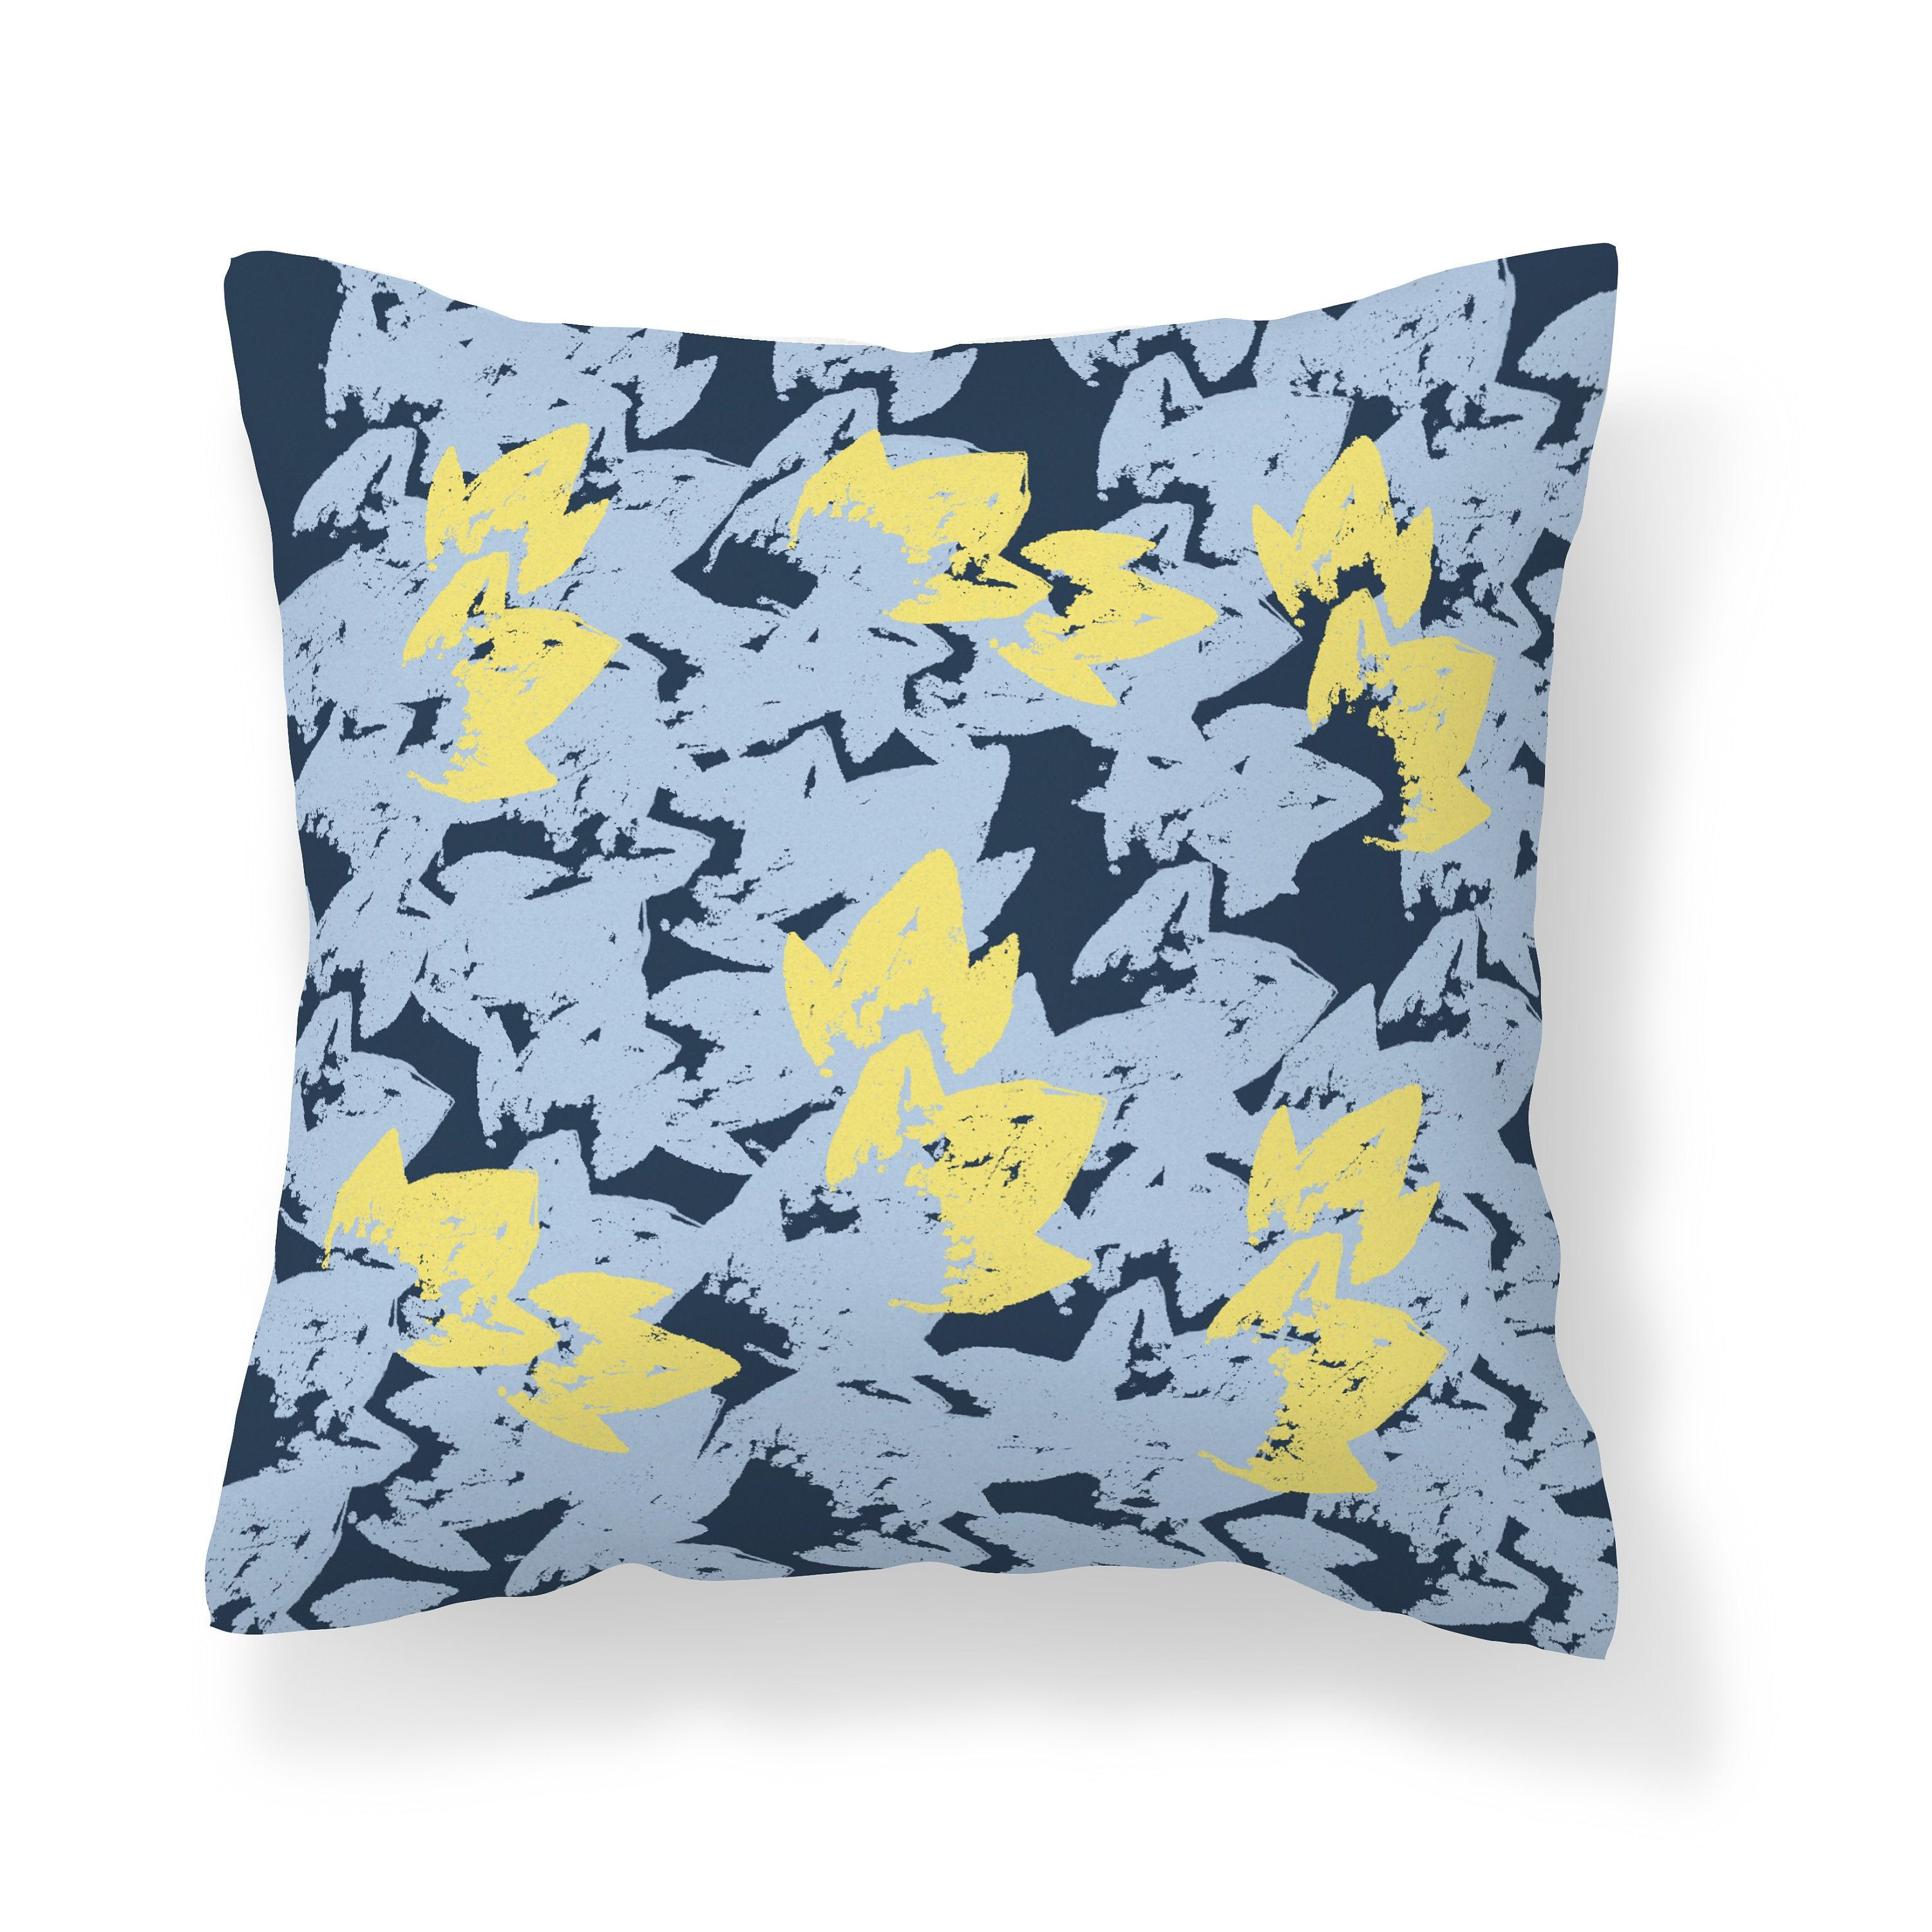 Blue Yellow Throw Pillow Cover Abstract Pillow Navy Light Etsy In 2020 Yellow Throw Pillows Yellow Throw Pillow Covers Throw Pillows